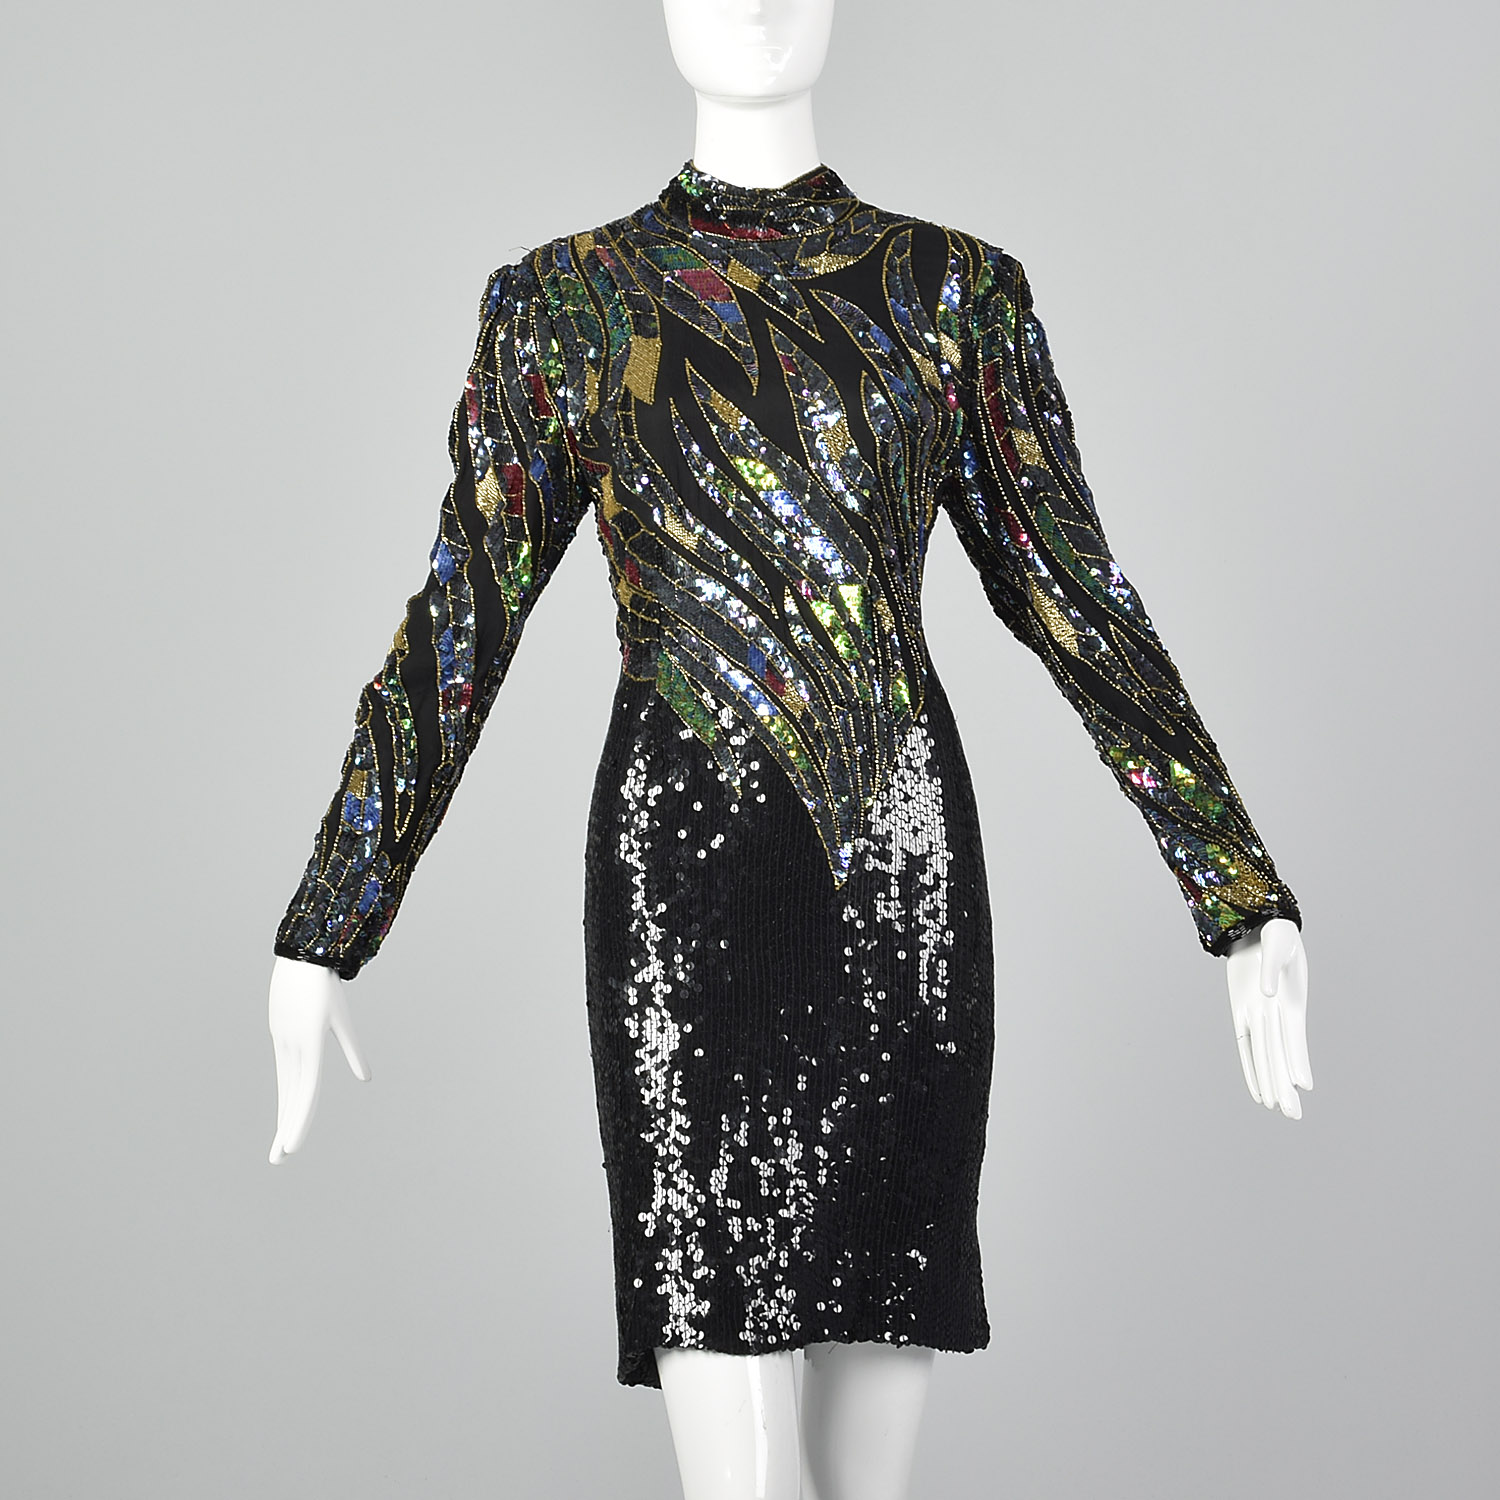 Party Cocktail Evening Club Office xs small medium SALE Vintage 1990s Sheer Sequined Kimono Sleeve Batwing Black Blouse